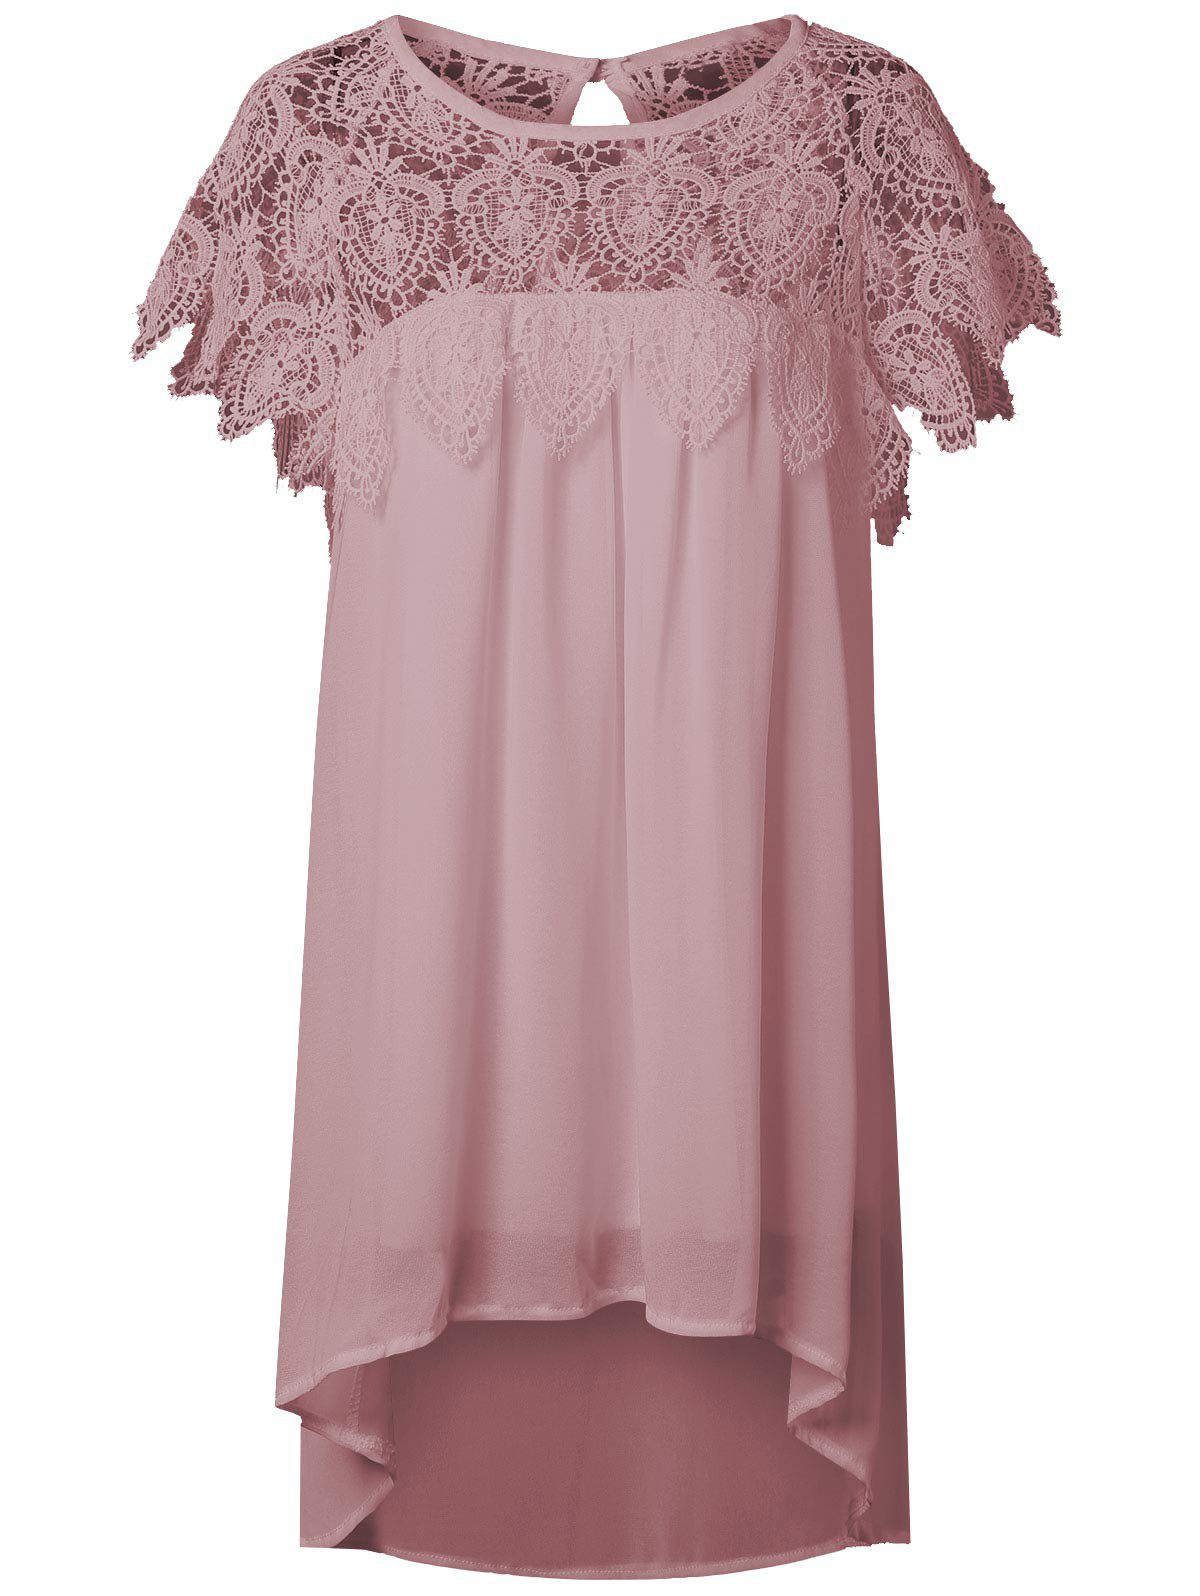 Lace Panel Chiffon Tunic Shift Summer Dress - PINKBEIGE S